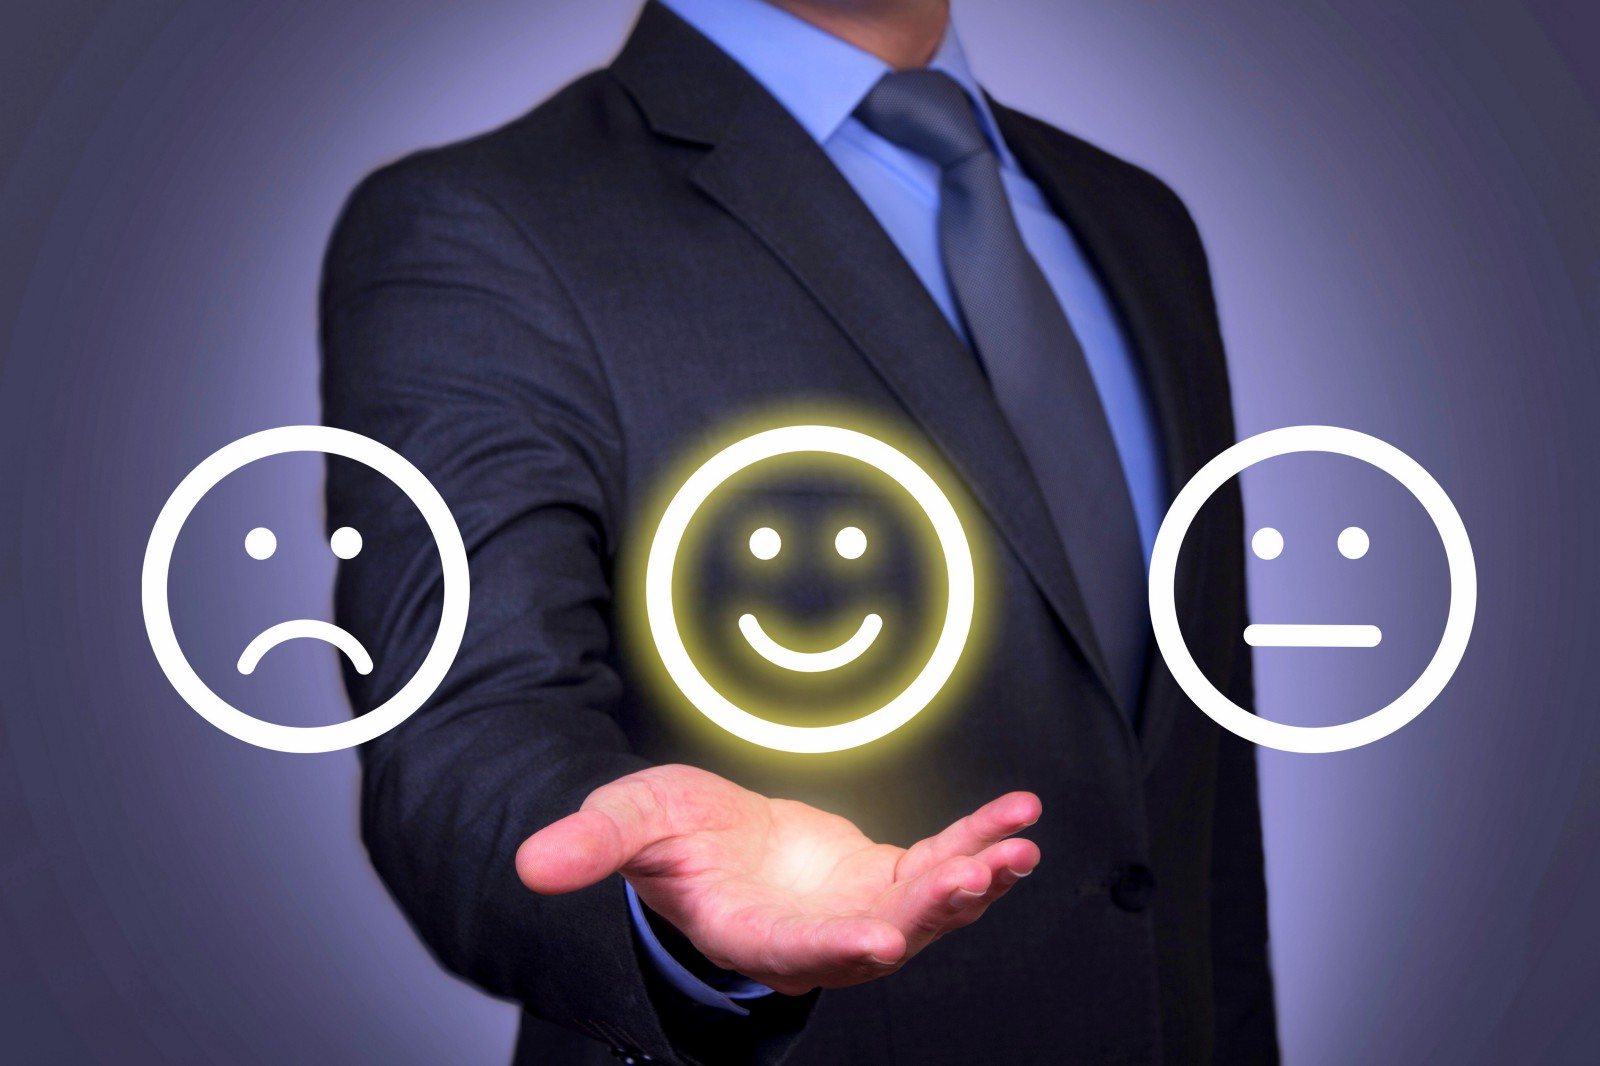 A headless man in suit holding a frown, smiling and poker emoticon in his palm